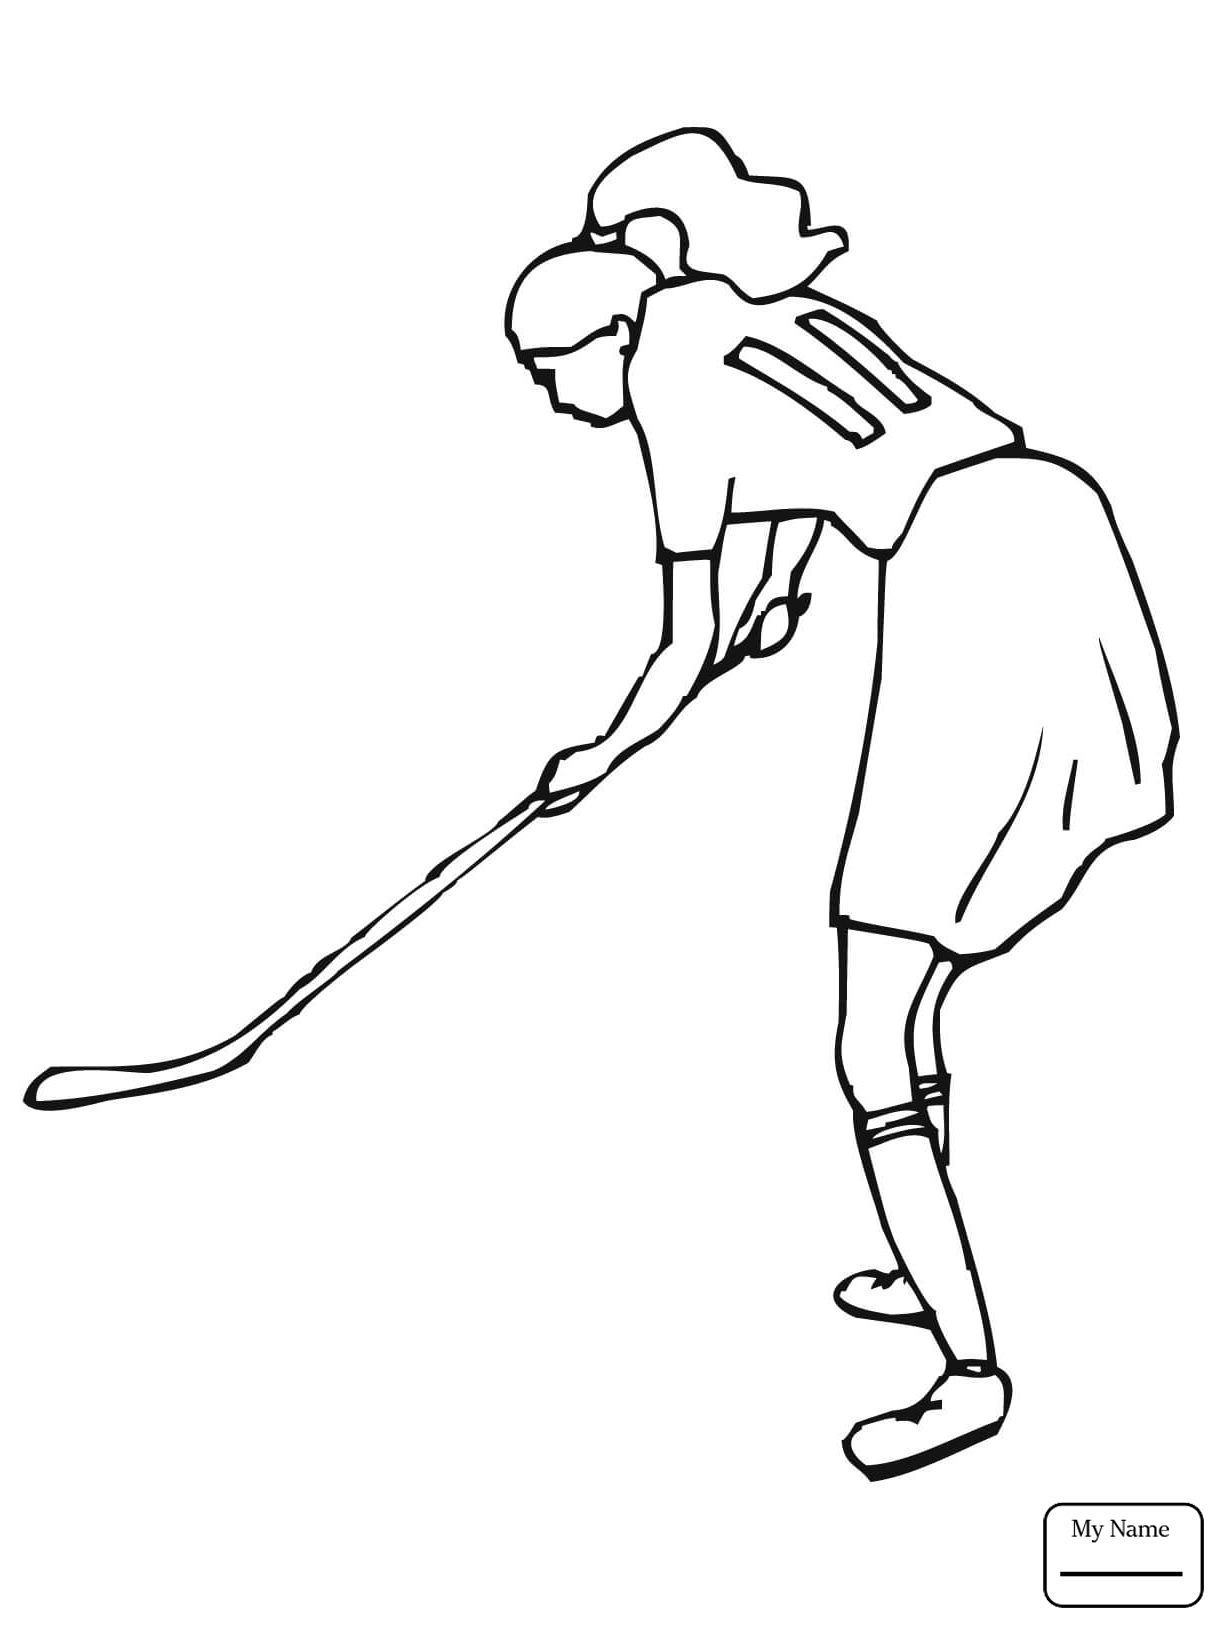 Field Hockey Stick Drawing at GetDrawings Free for